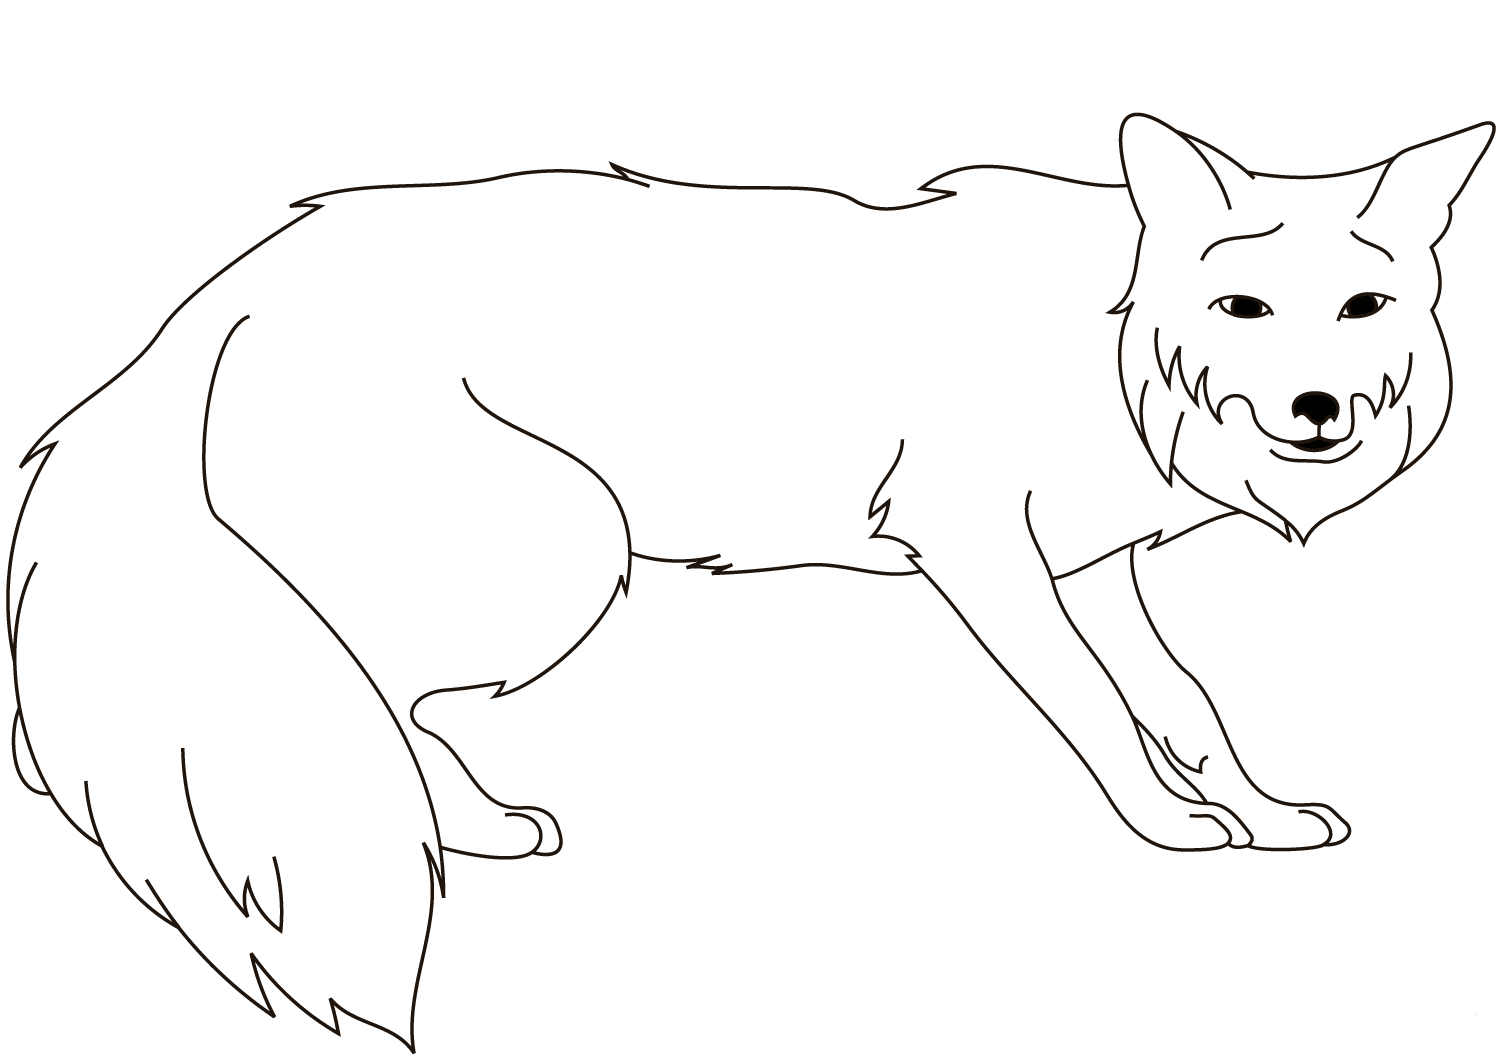 Red Fox Coloring Page For Preschoolers